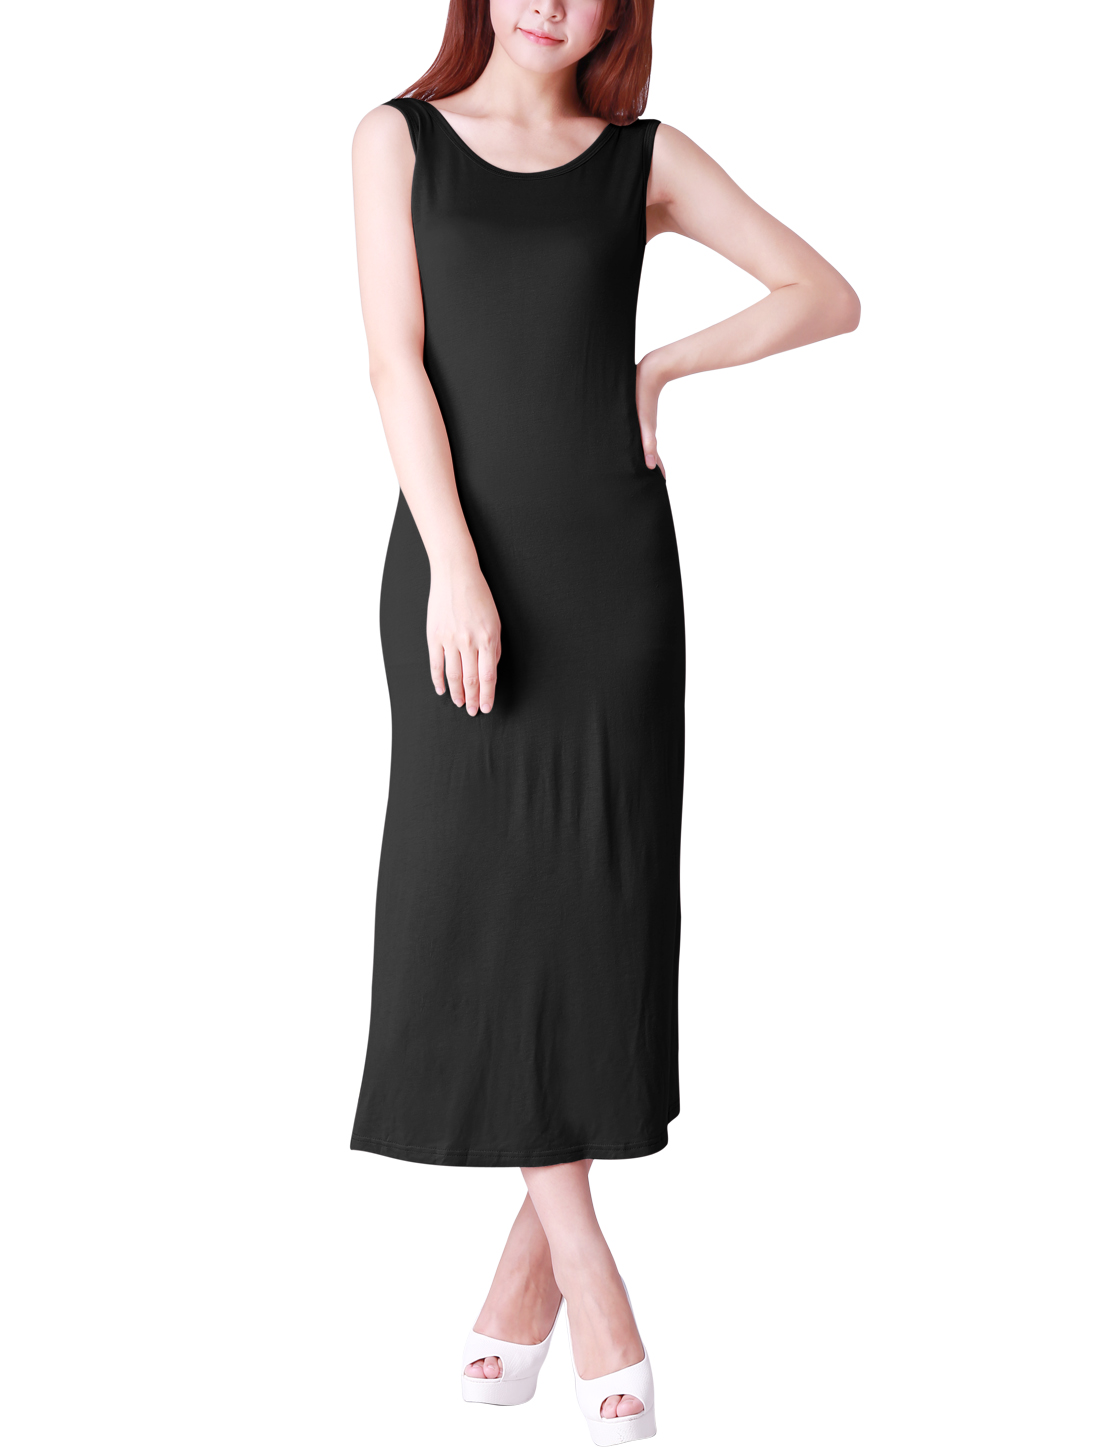 NEW Fashion U Neck Backless Black Maxi Dress M for Lady